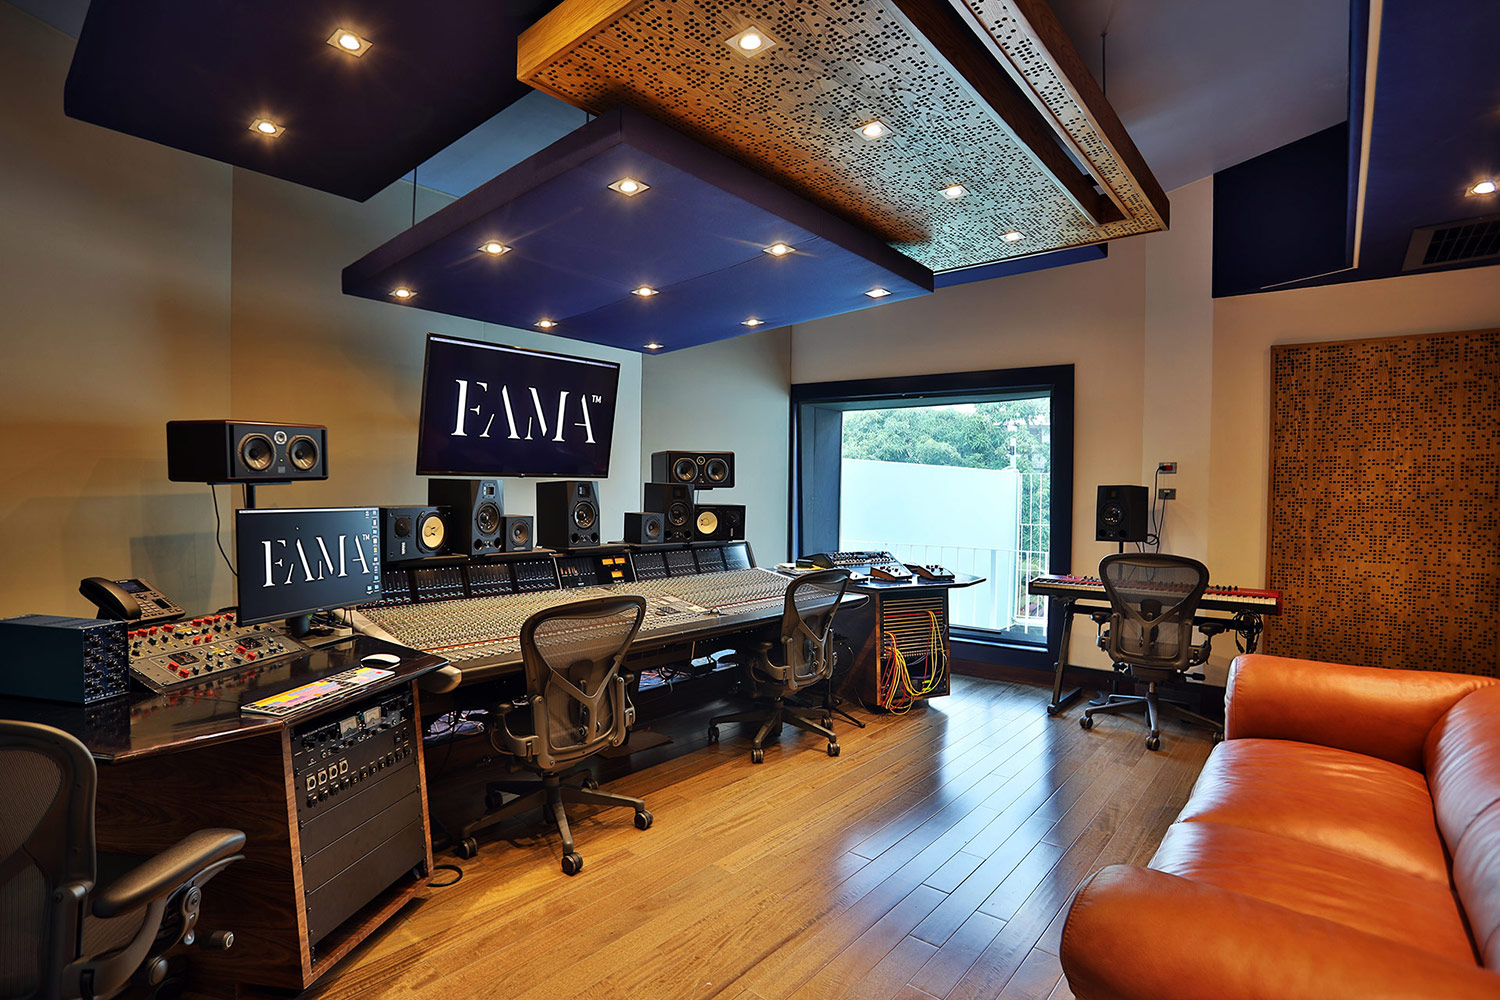 FAMA Studio owner Luis Betances retained WSDG Latin for an acoustic and aesthetic studio design to create a dream recording studio that meets his production needs in Santo Domingo, Dominican Republic. Control Room B.